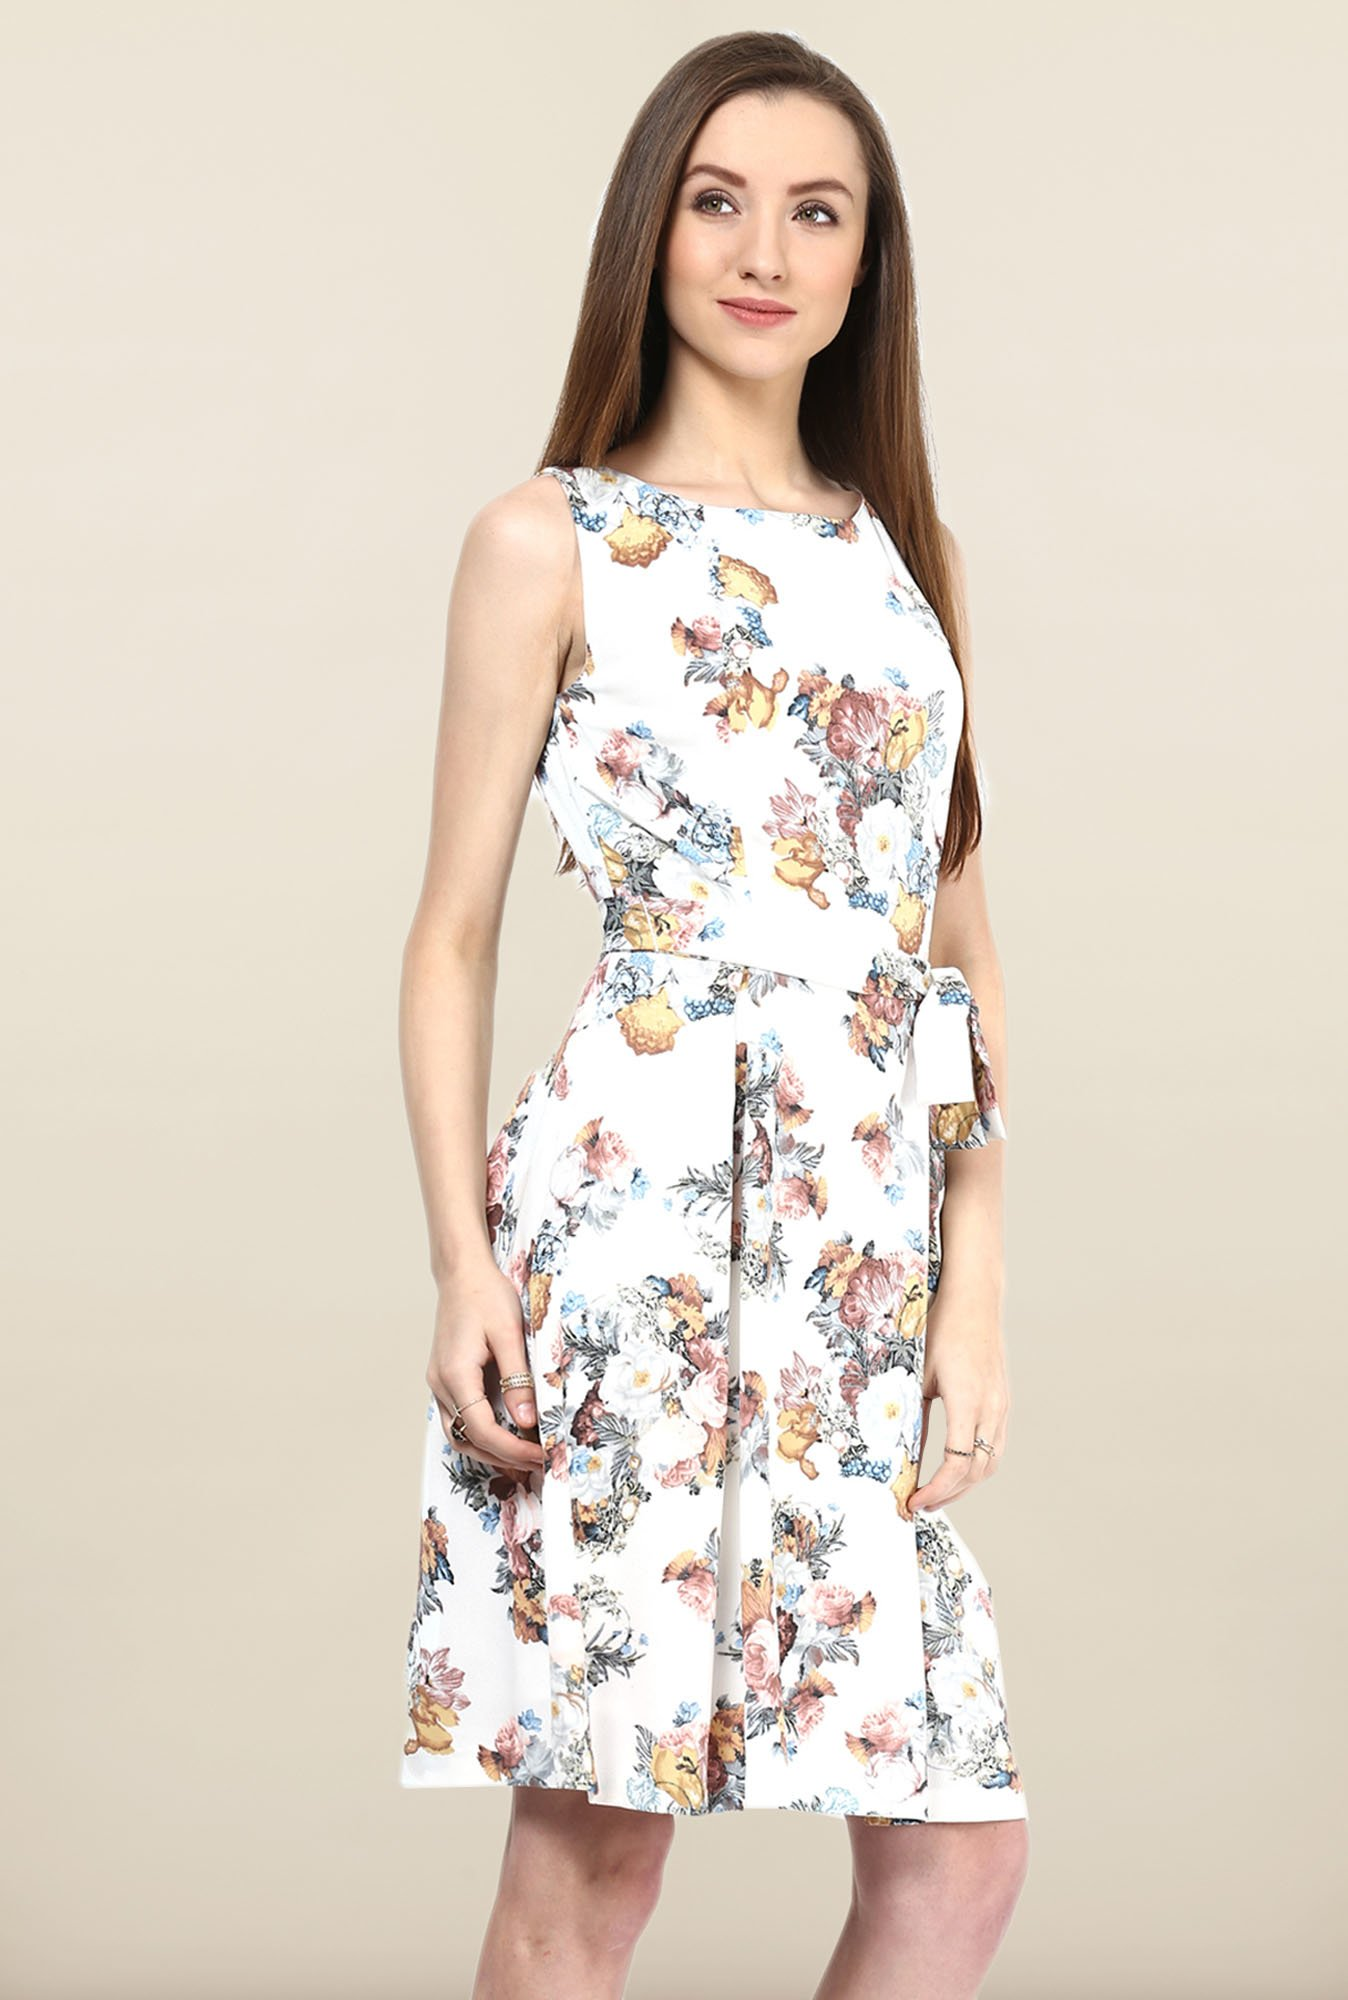 Avirate White Floral Print Skater Dress